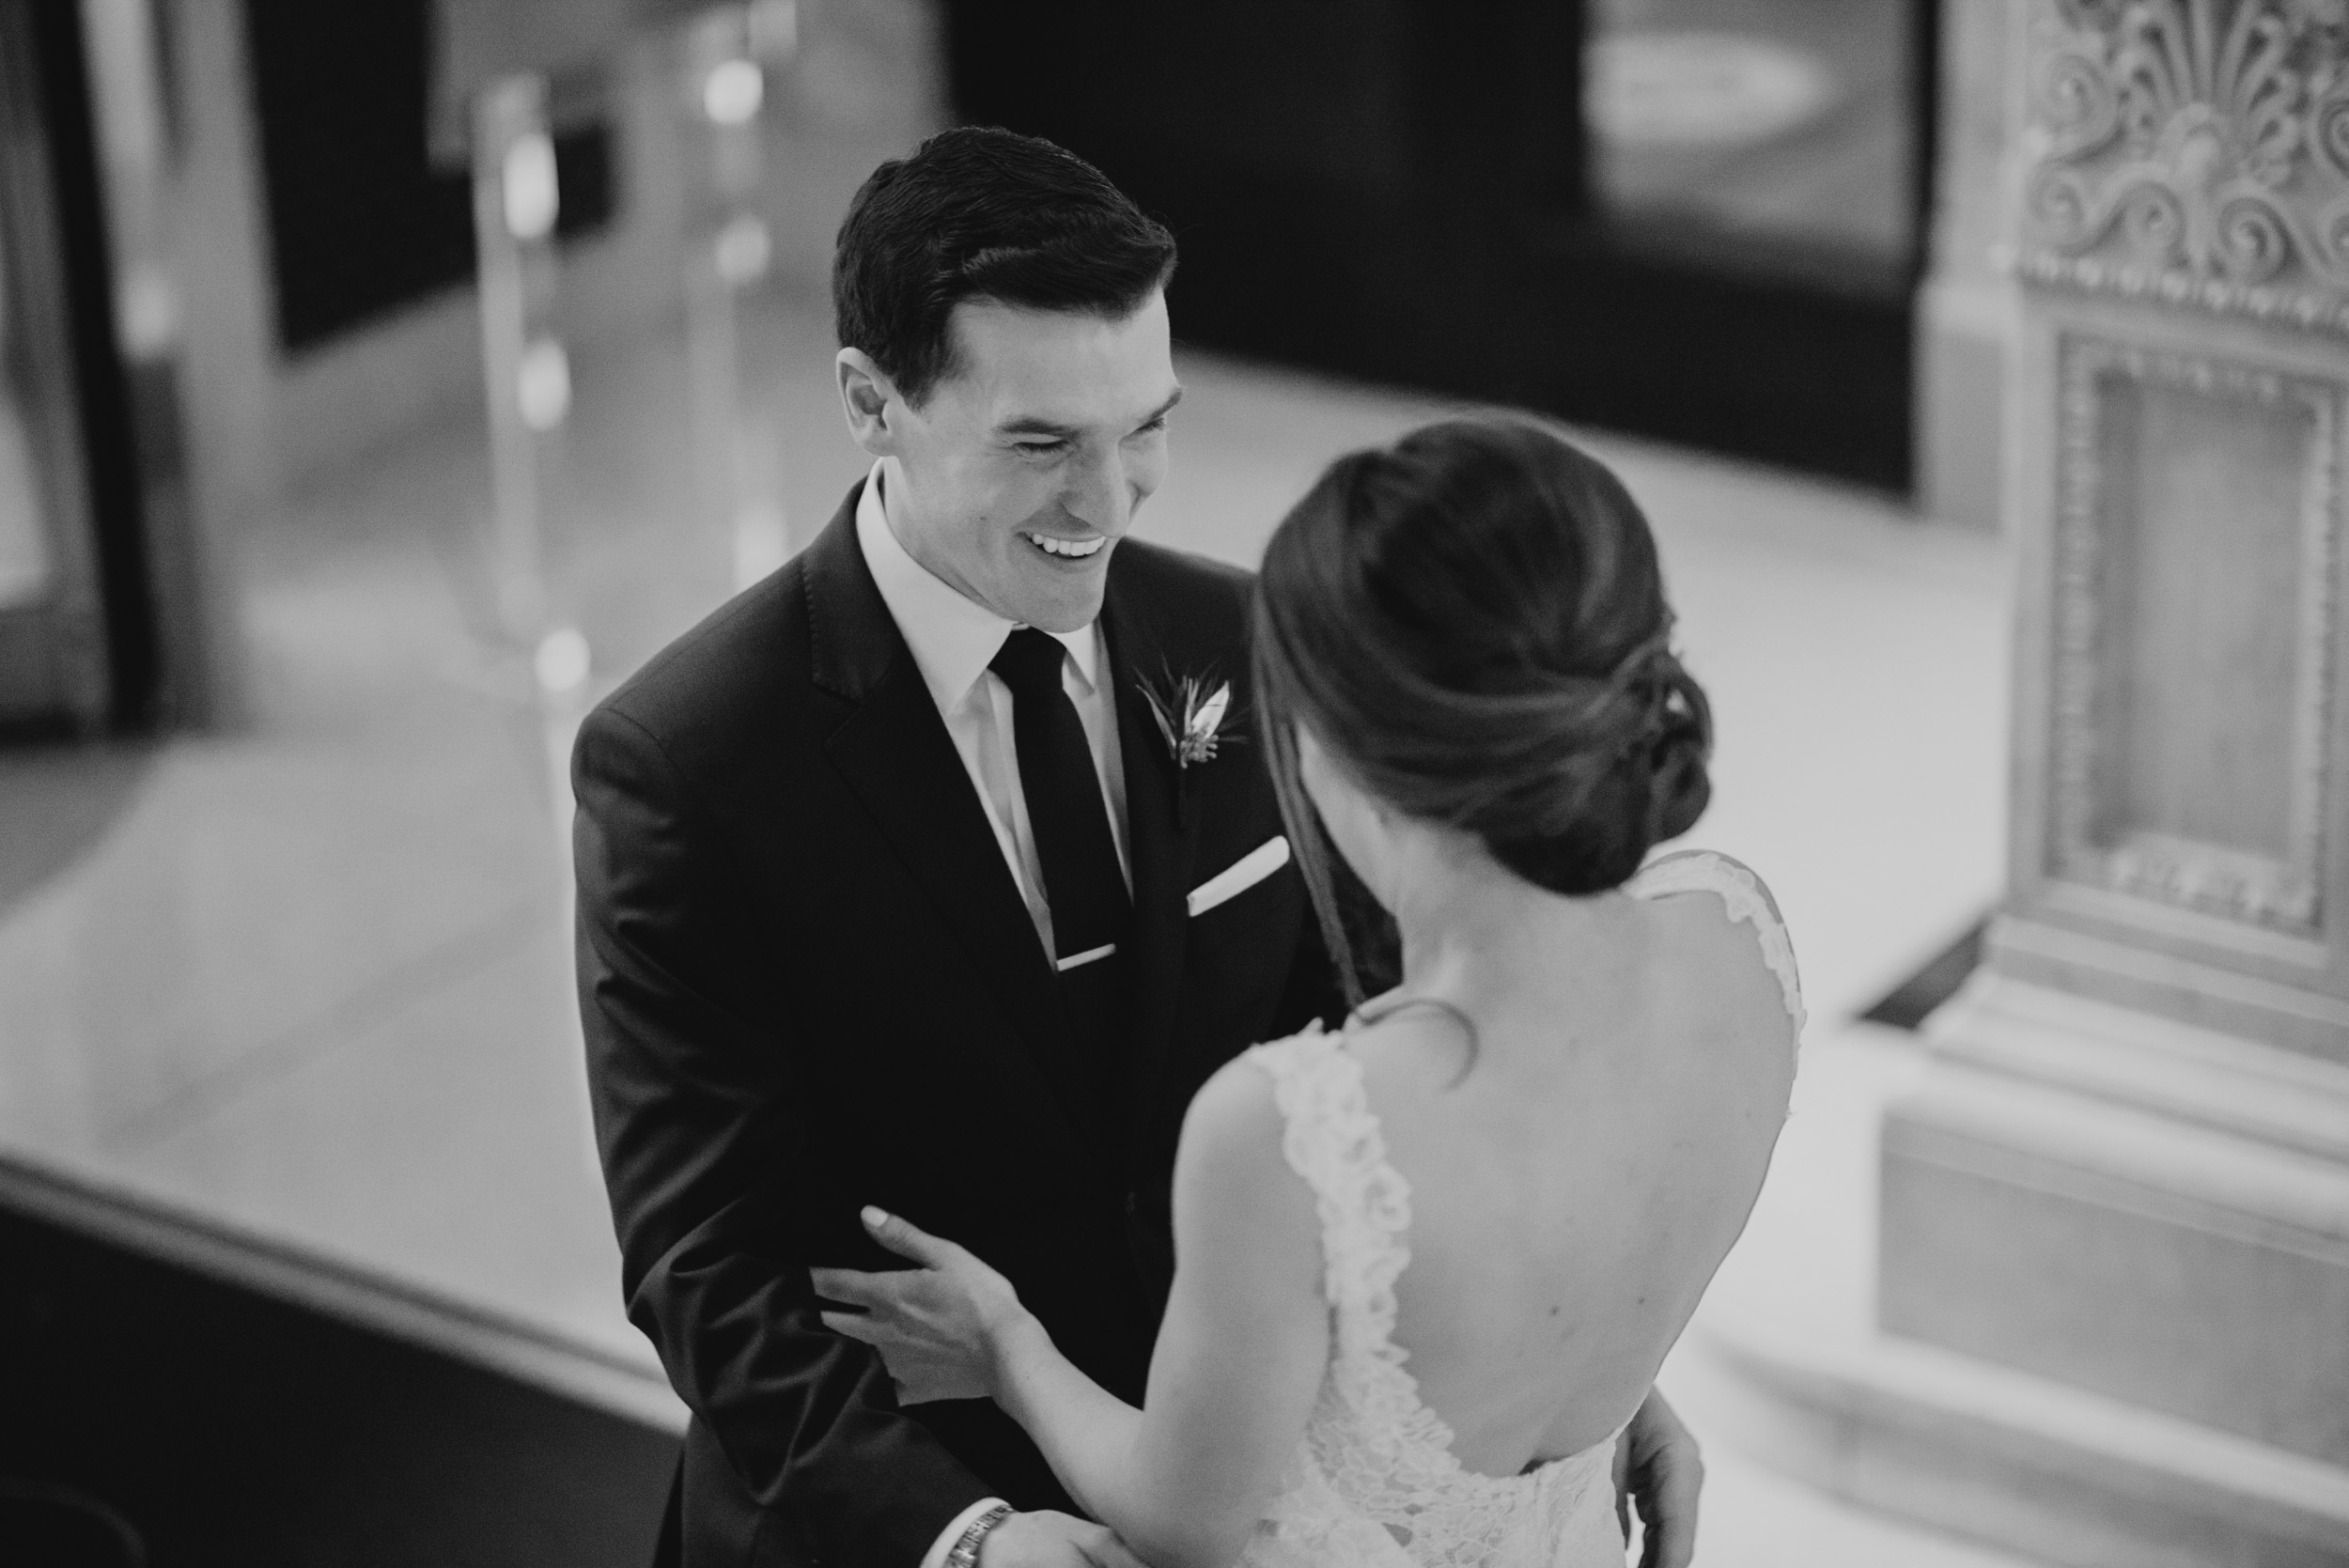 HaroldWashingtonLibraryWedding_Polly C Photography 1704140921.jpg